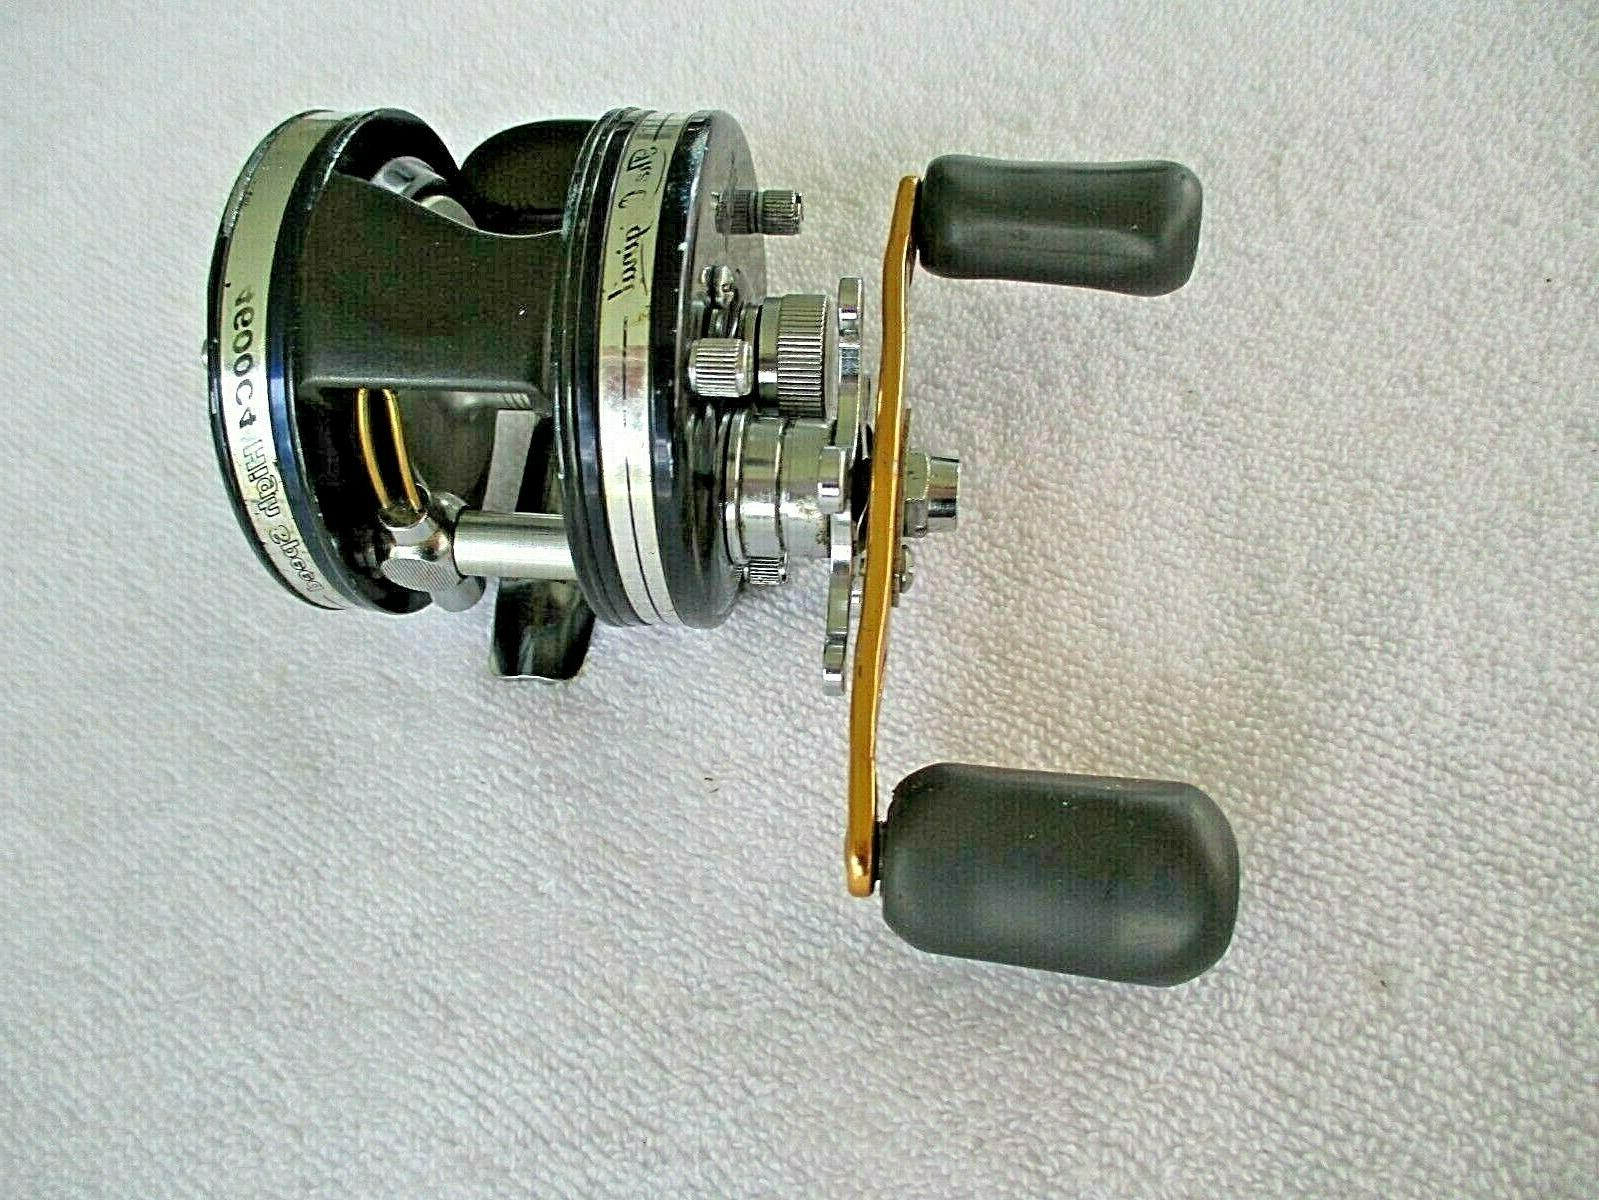 4600 c4 the original disassembled cleaned